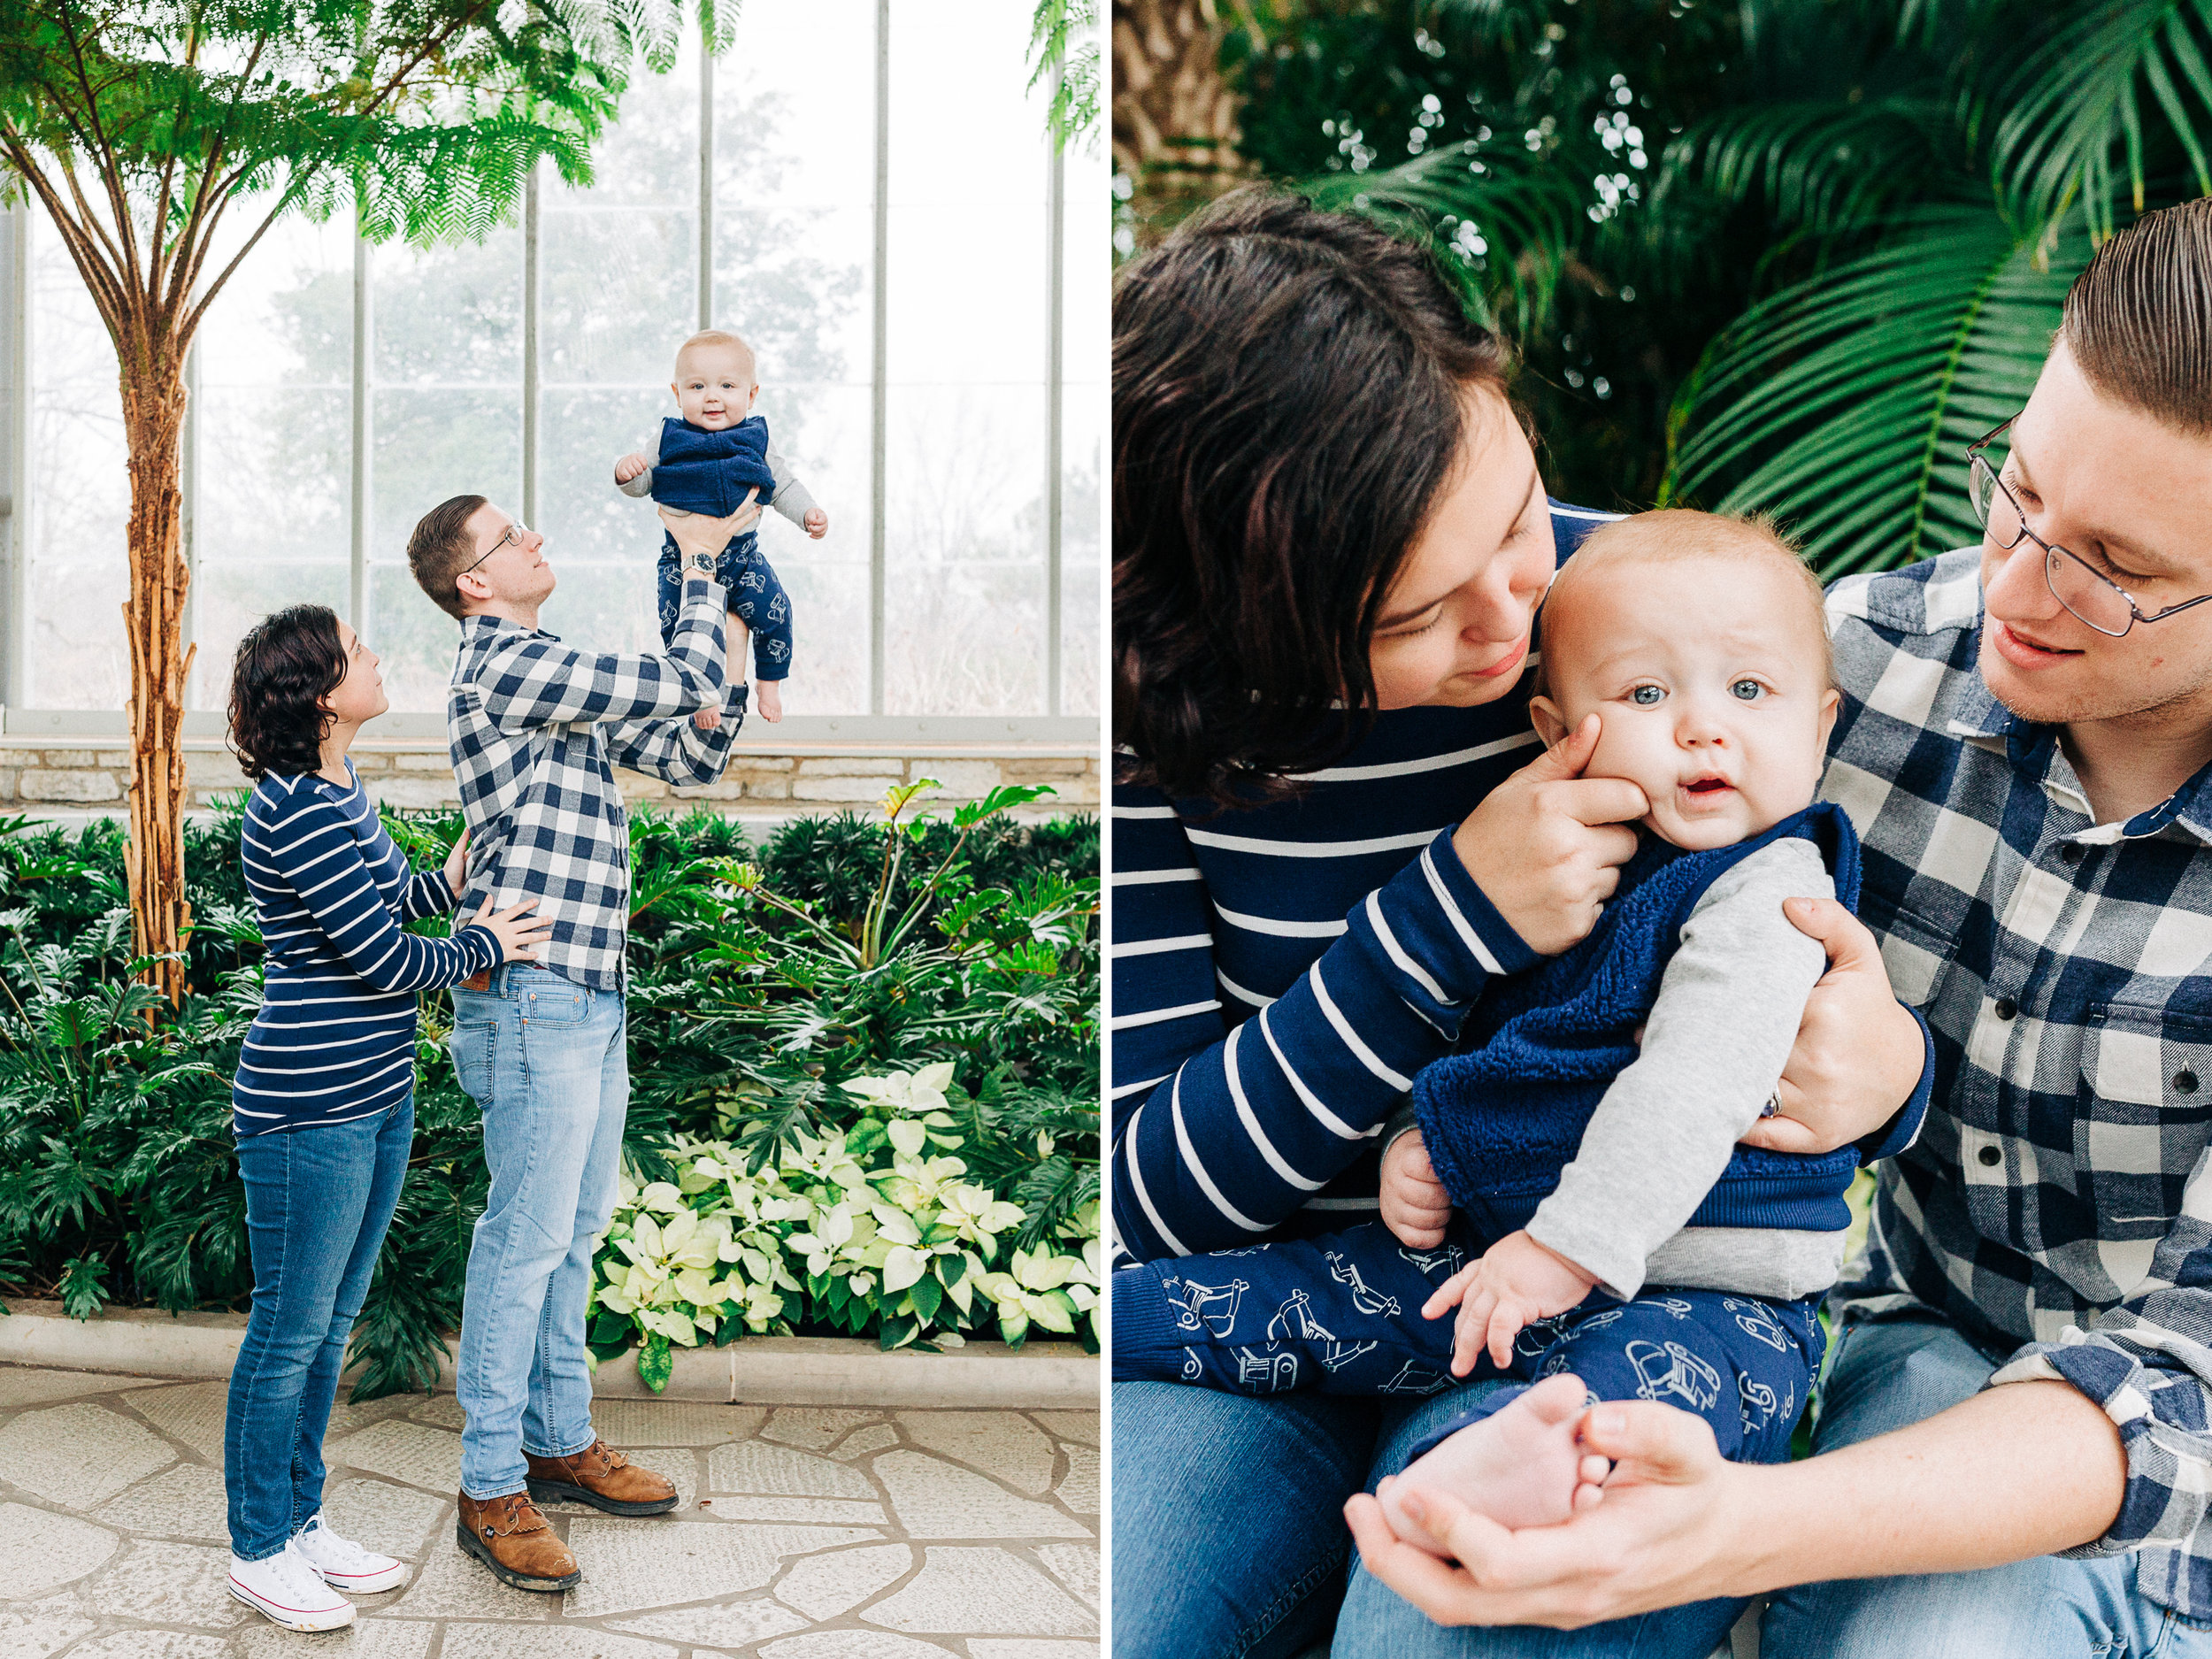 Dorothy_Louise_Photography_Fenske_Family_Forest_Park_Jewel_Box_and_Muny_Collage1-1.jpg